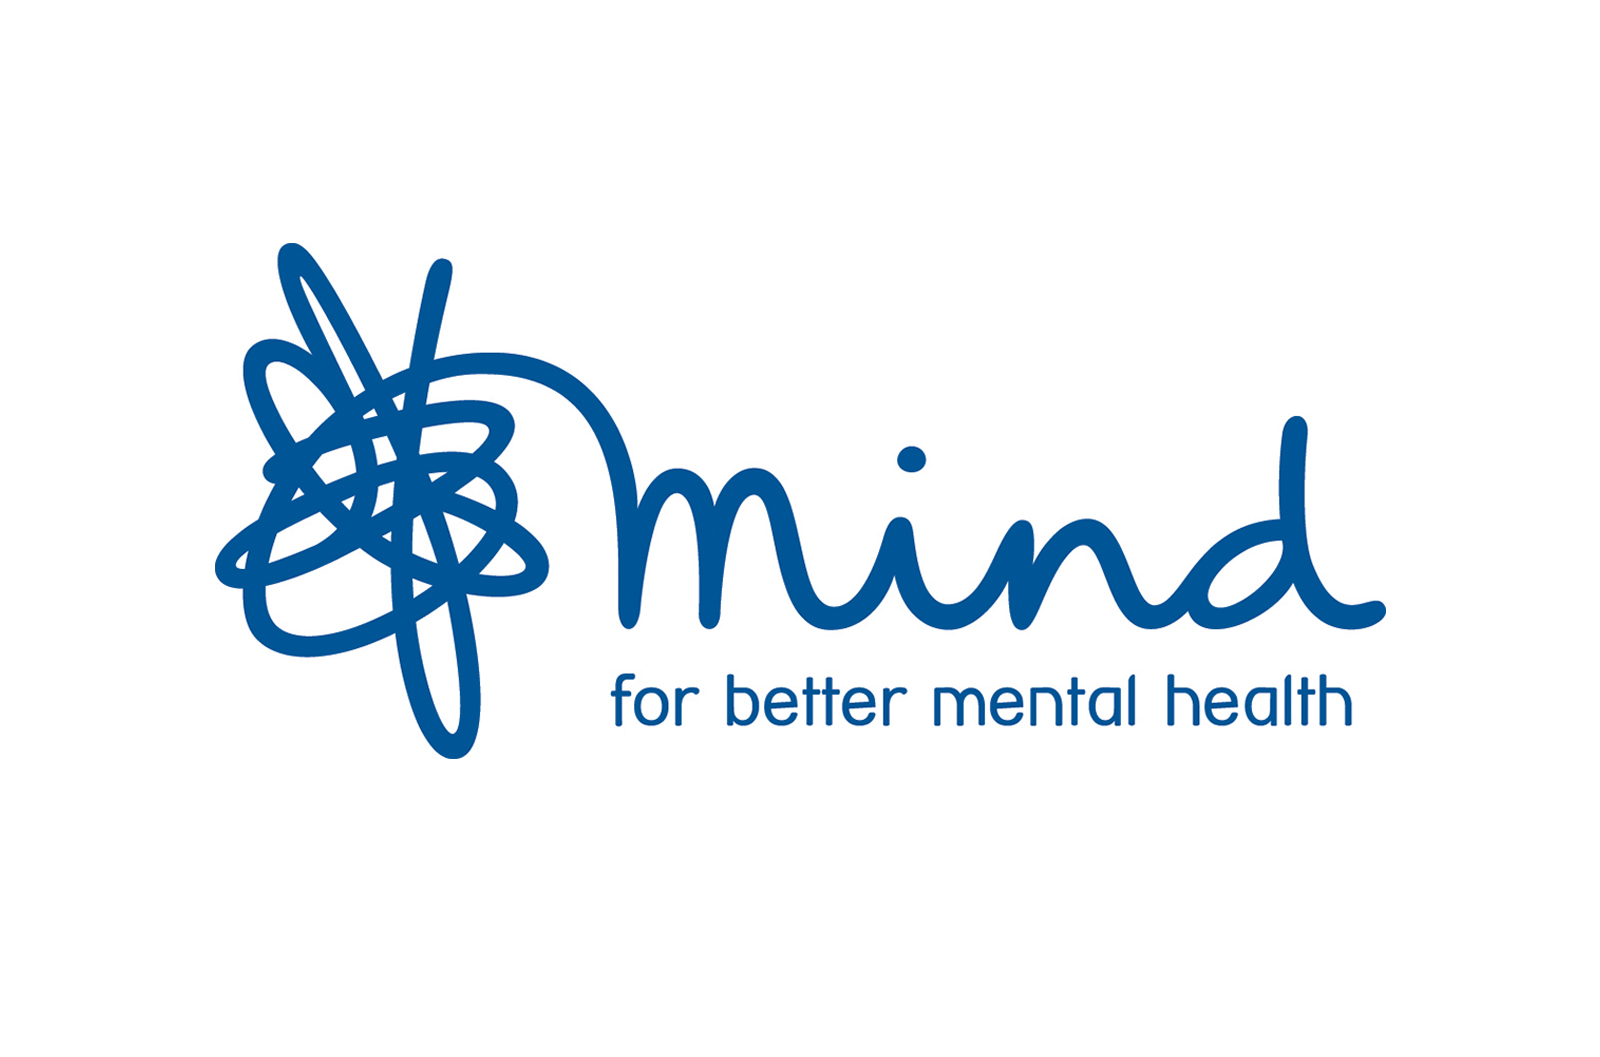 Mind-logo-designed-by-Glazer.jpg